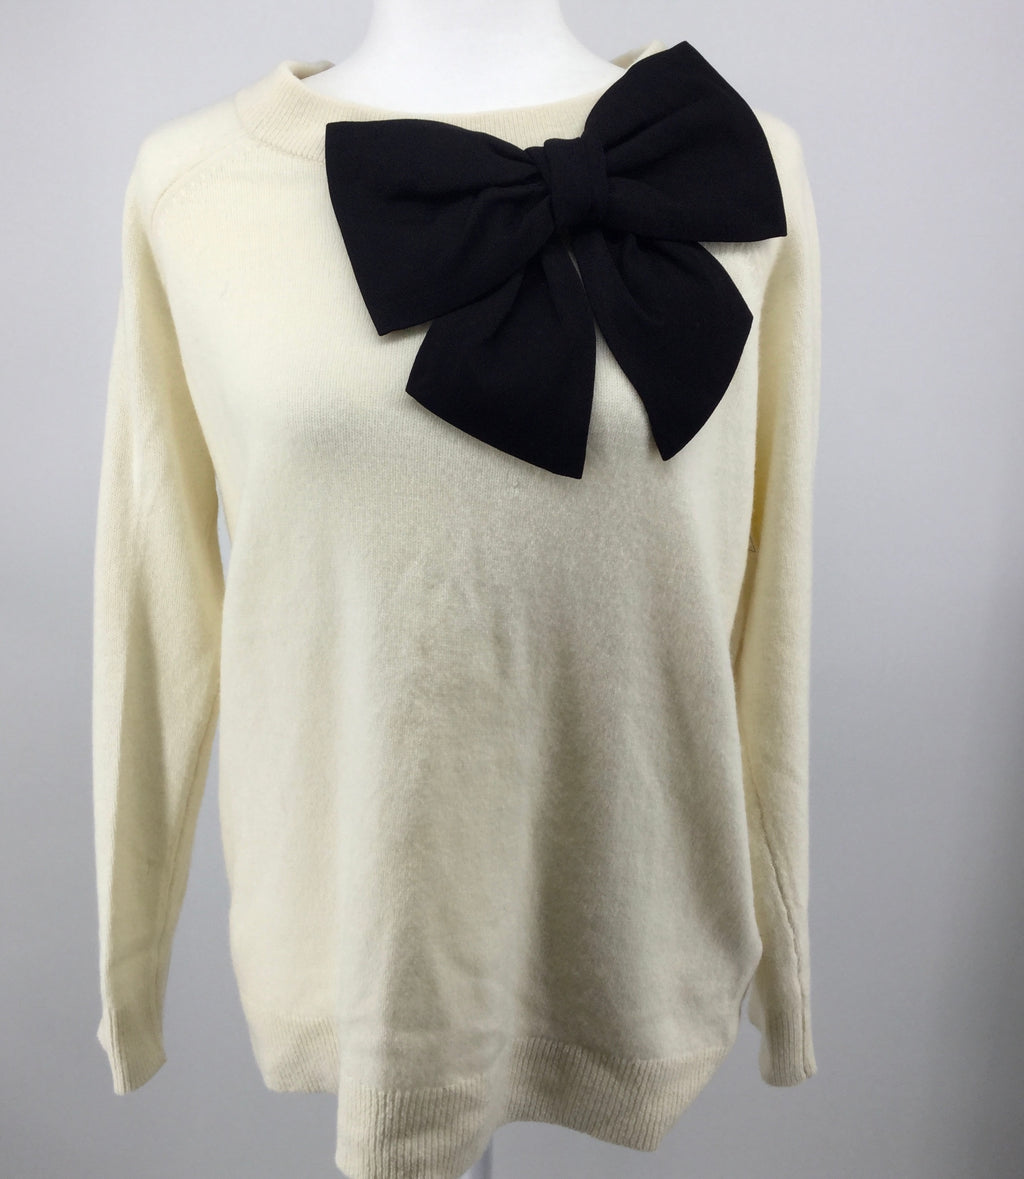 Kate Spade Top Size:m